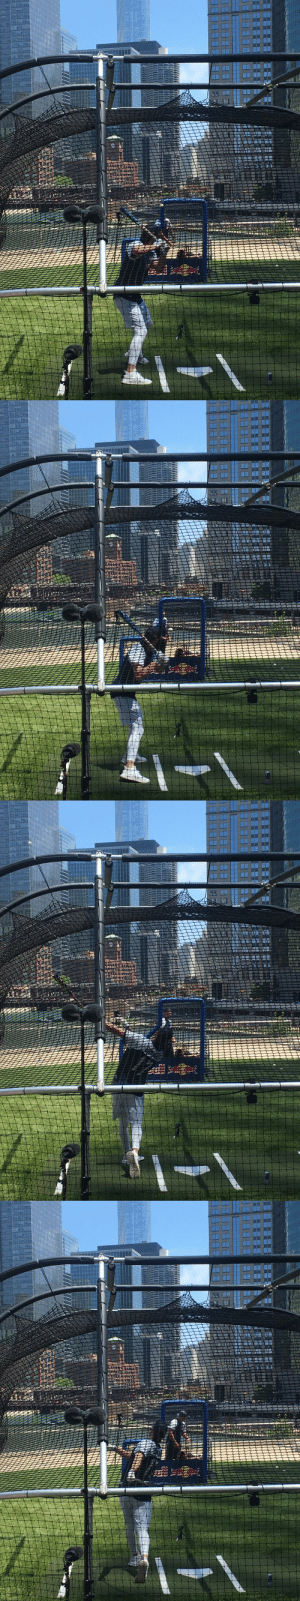 Memes, Run, and 🤖: RT @BaseballBros: Kris Bryant's swing is ready for a playoff run https://t.co/IQjVeqkfCO